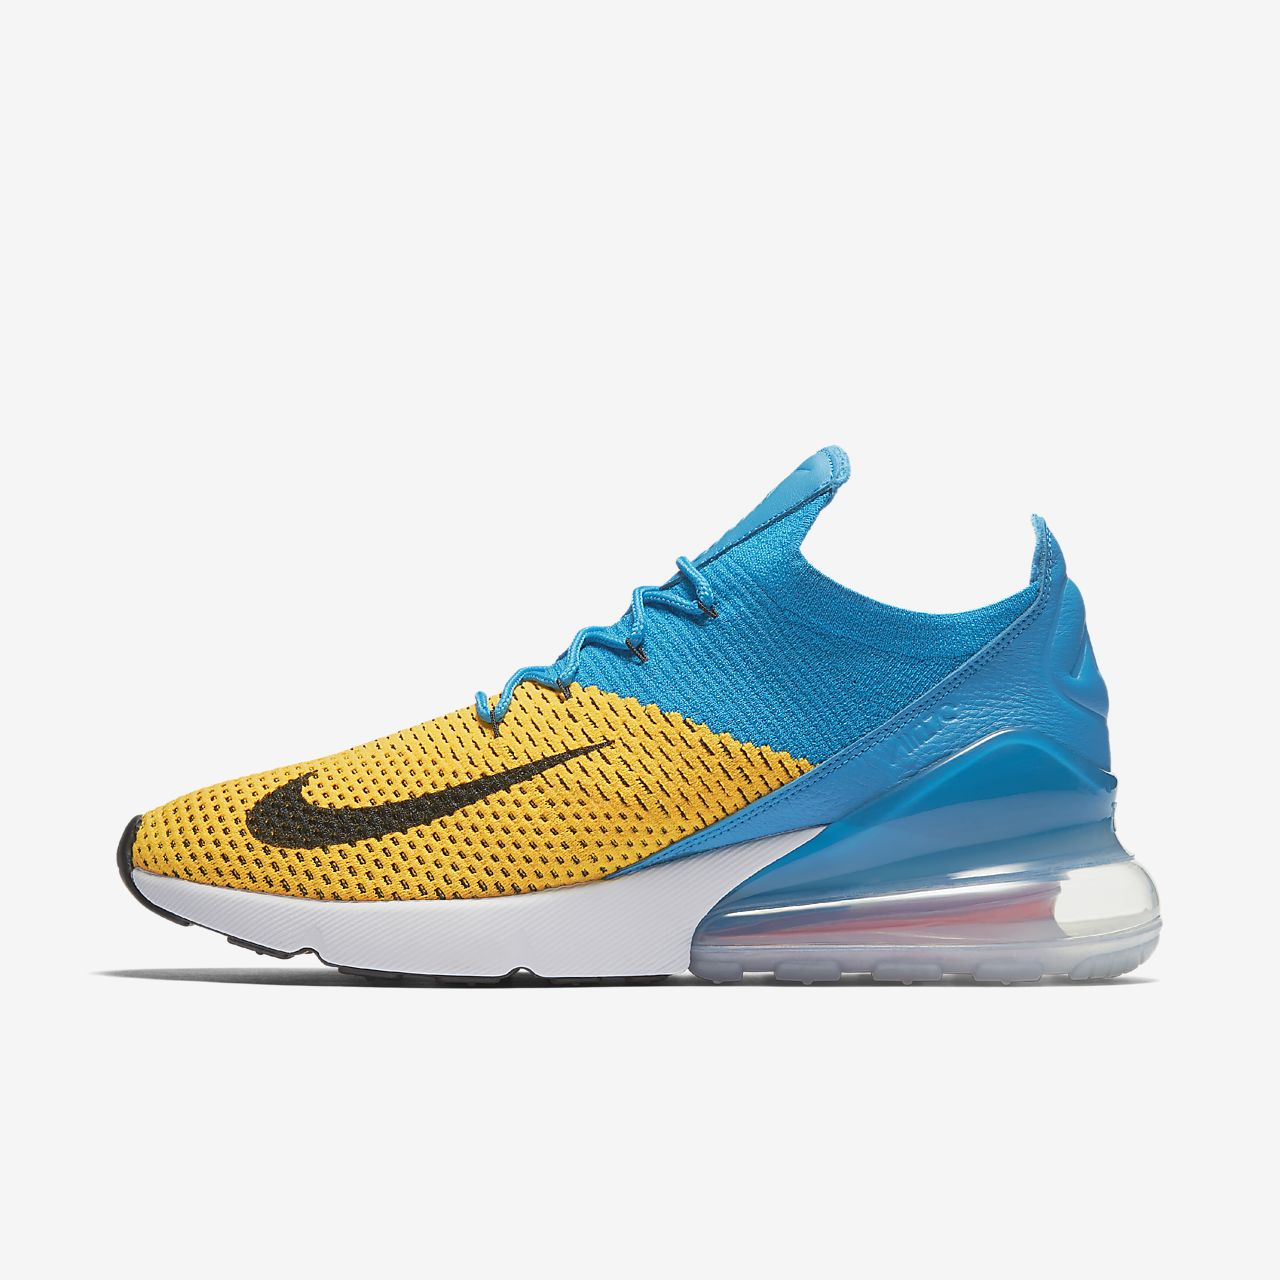 Nike Air Max 270 Flyknit Mens Shoe